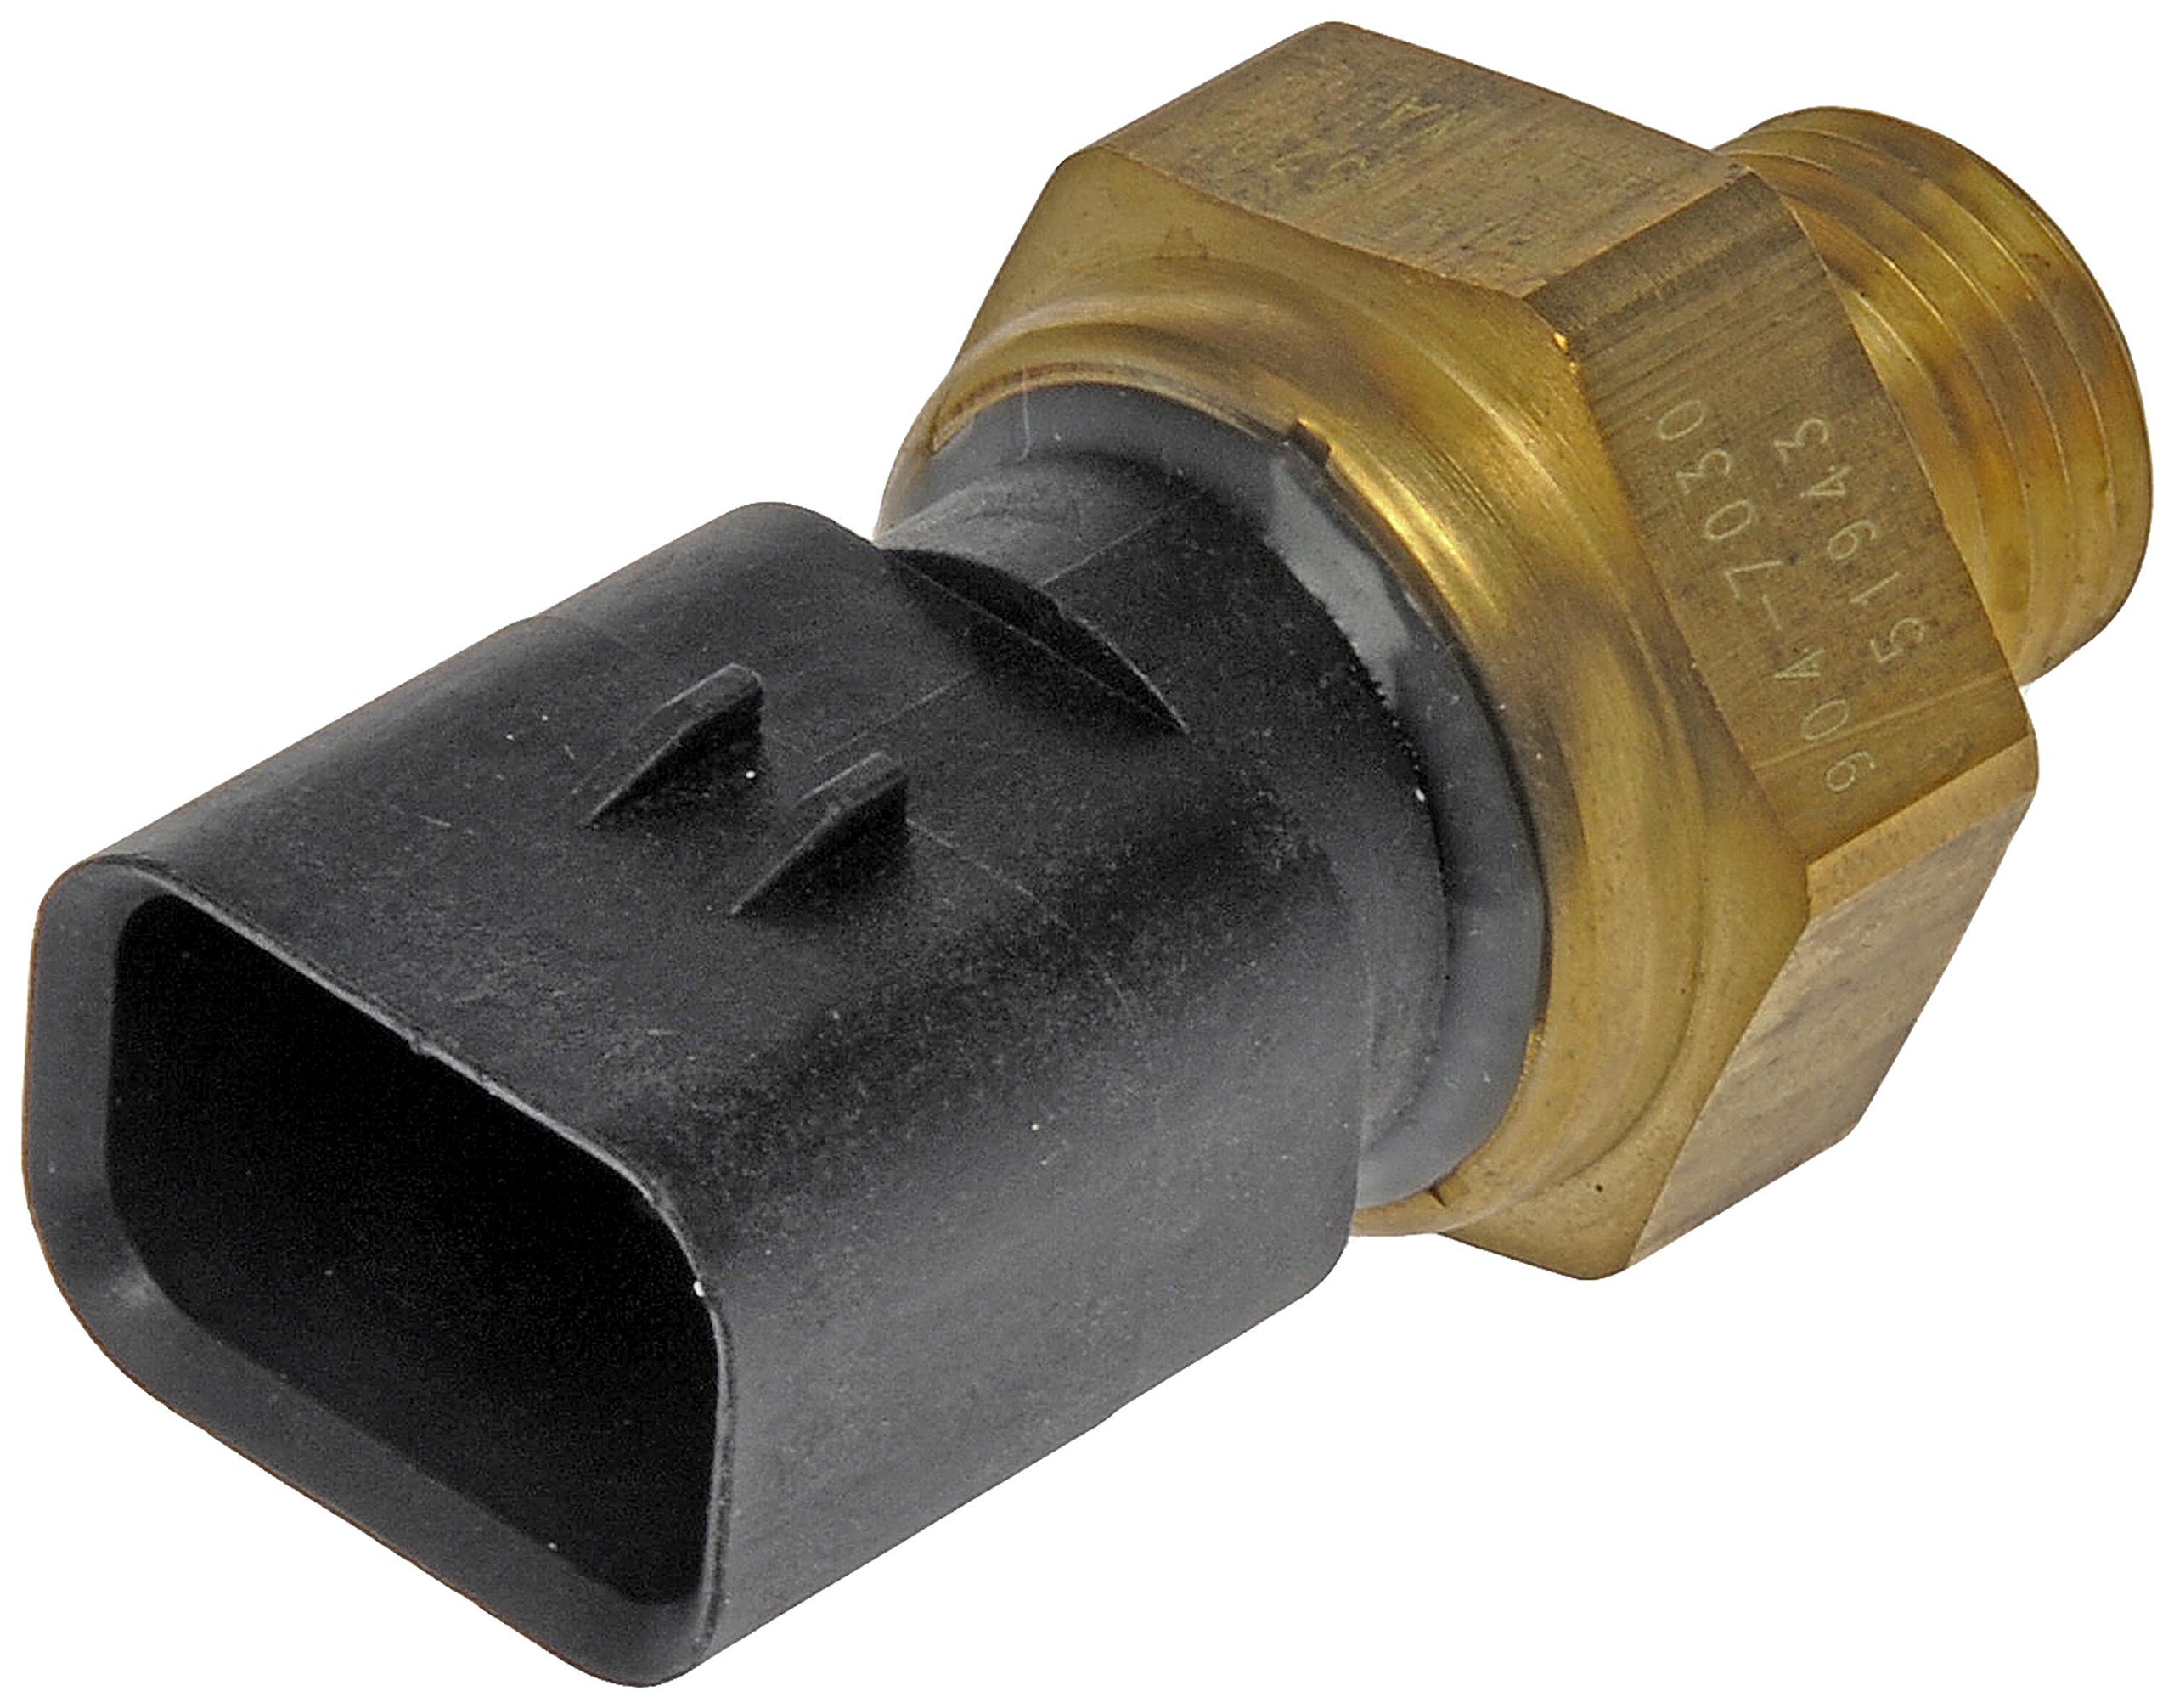 Dorman 904-7030 Turbocharger Boost Pressure Sensor by Dorman